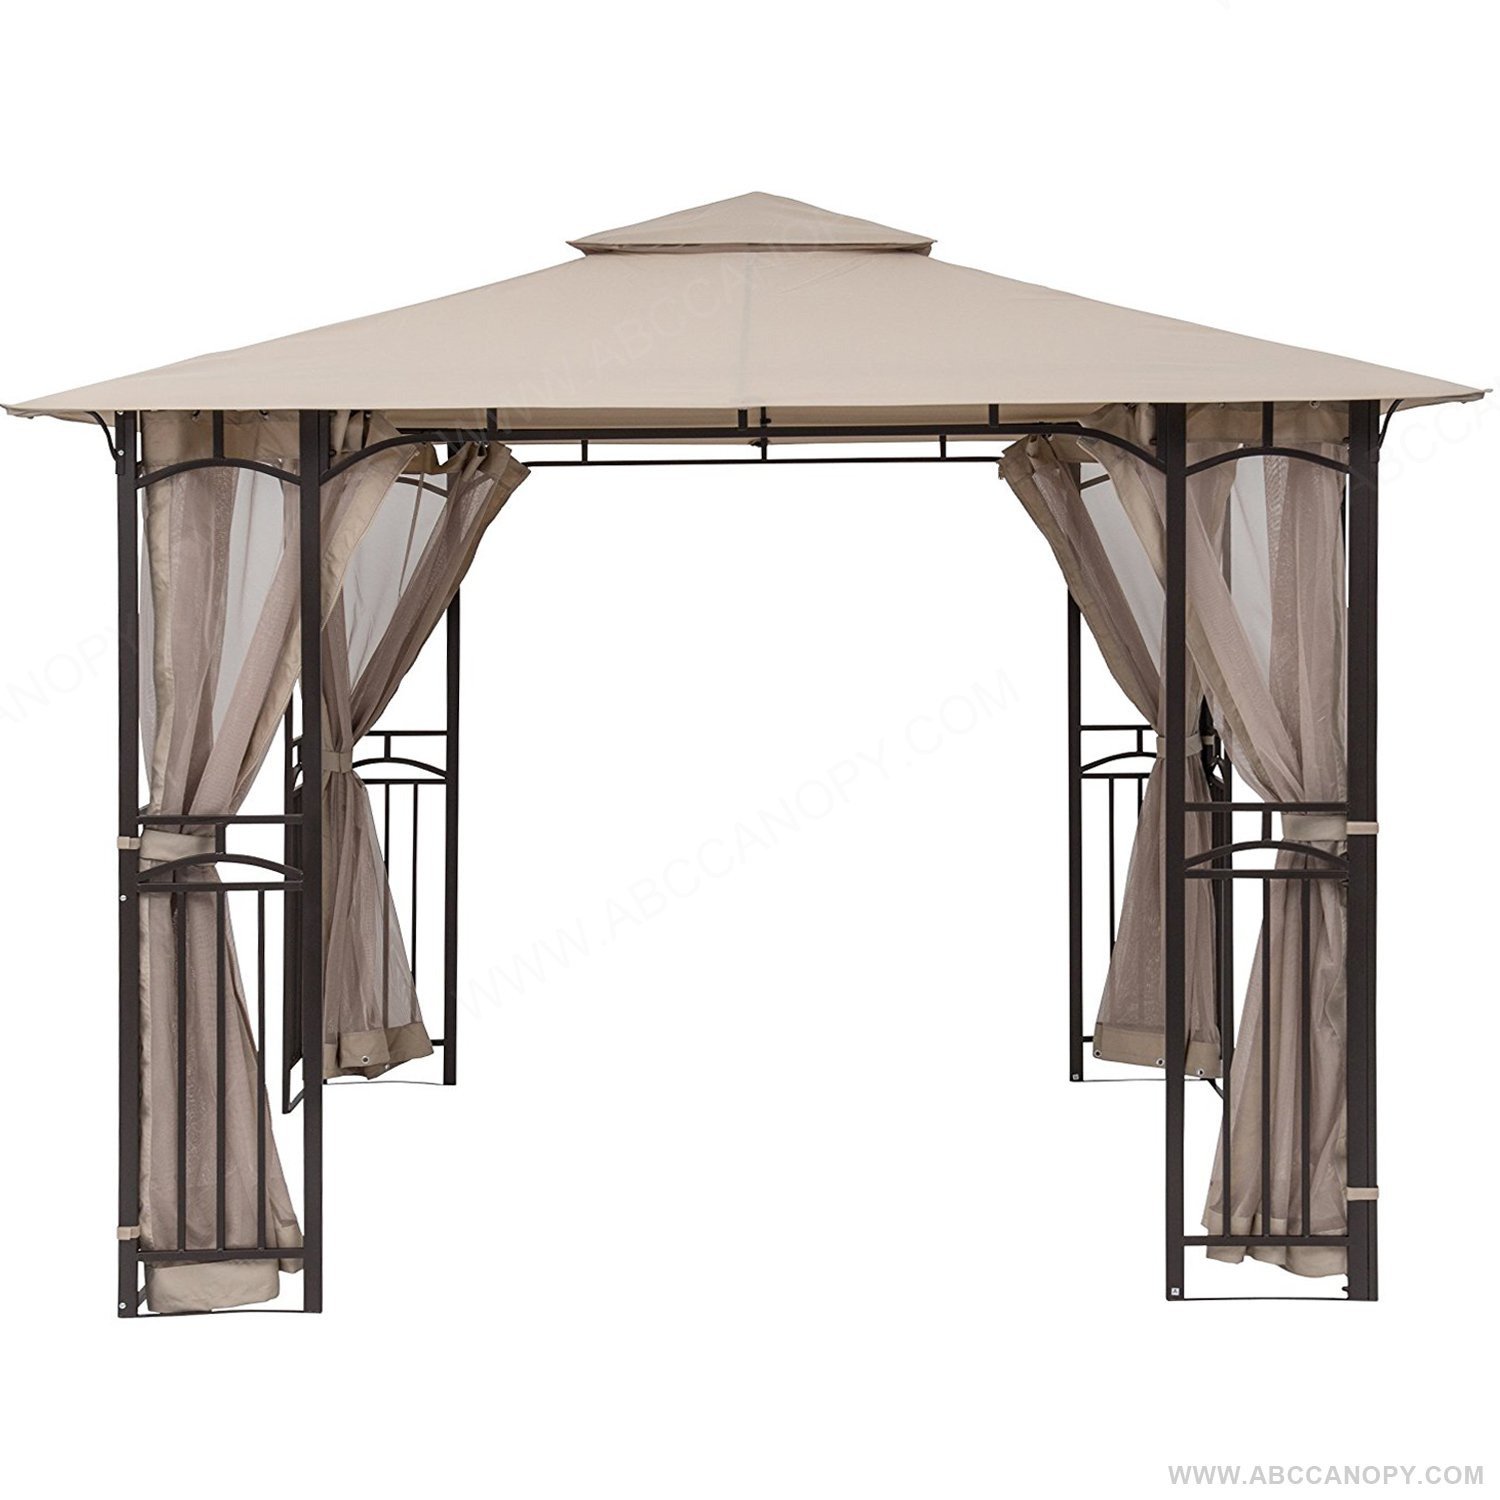 ABCCANOPY Gazebo Mosquito Netting Screen walls for 10'x12' or 11'x14' Gazebo Canopy Beige (Only Screen Wall)